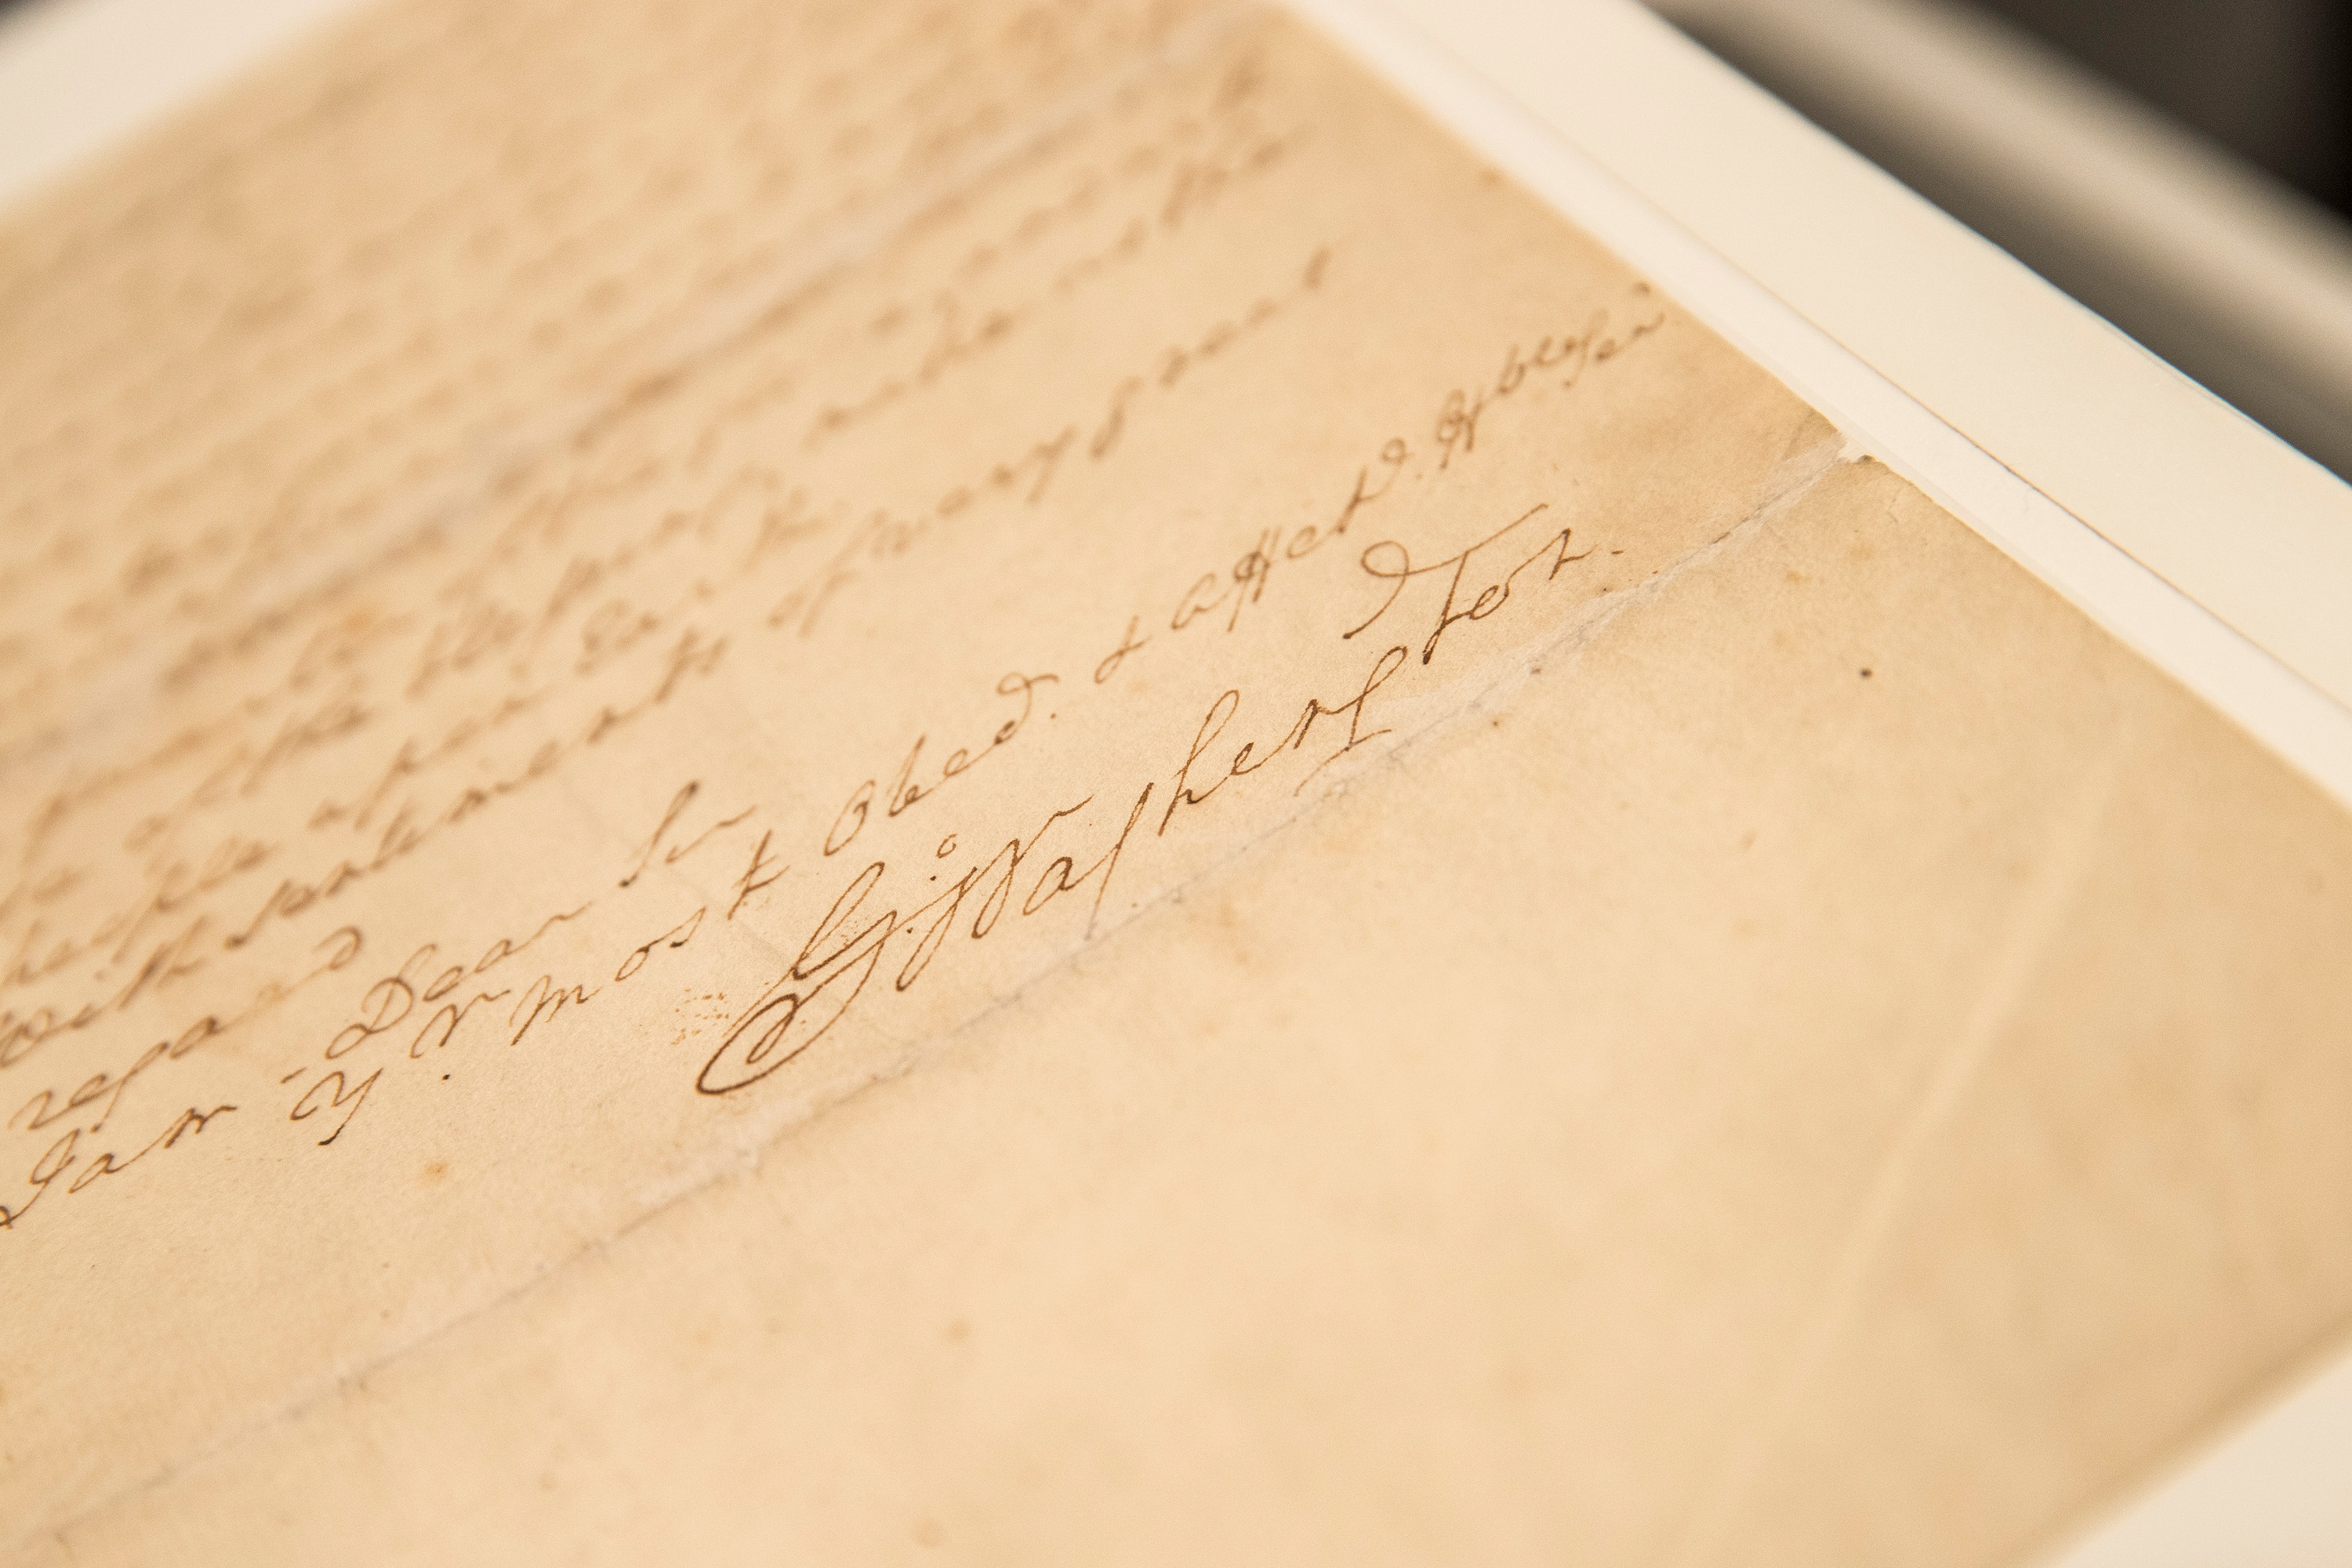 The signature of George Washington, the first president of the United States, is seen on a letter he wrote regarding the United States' Constitution.